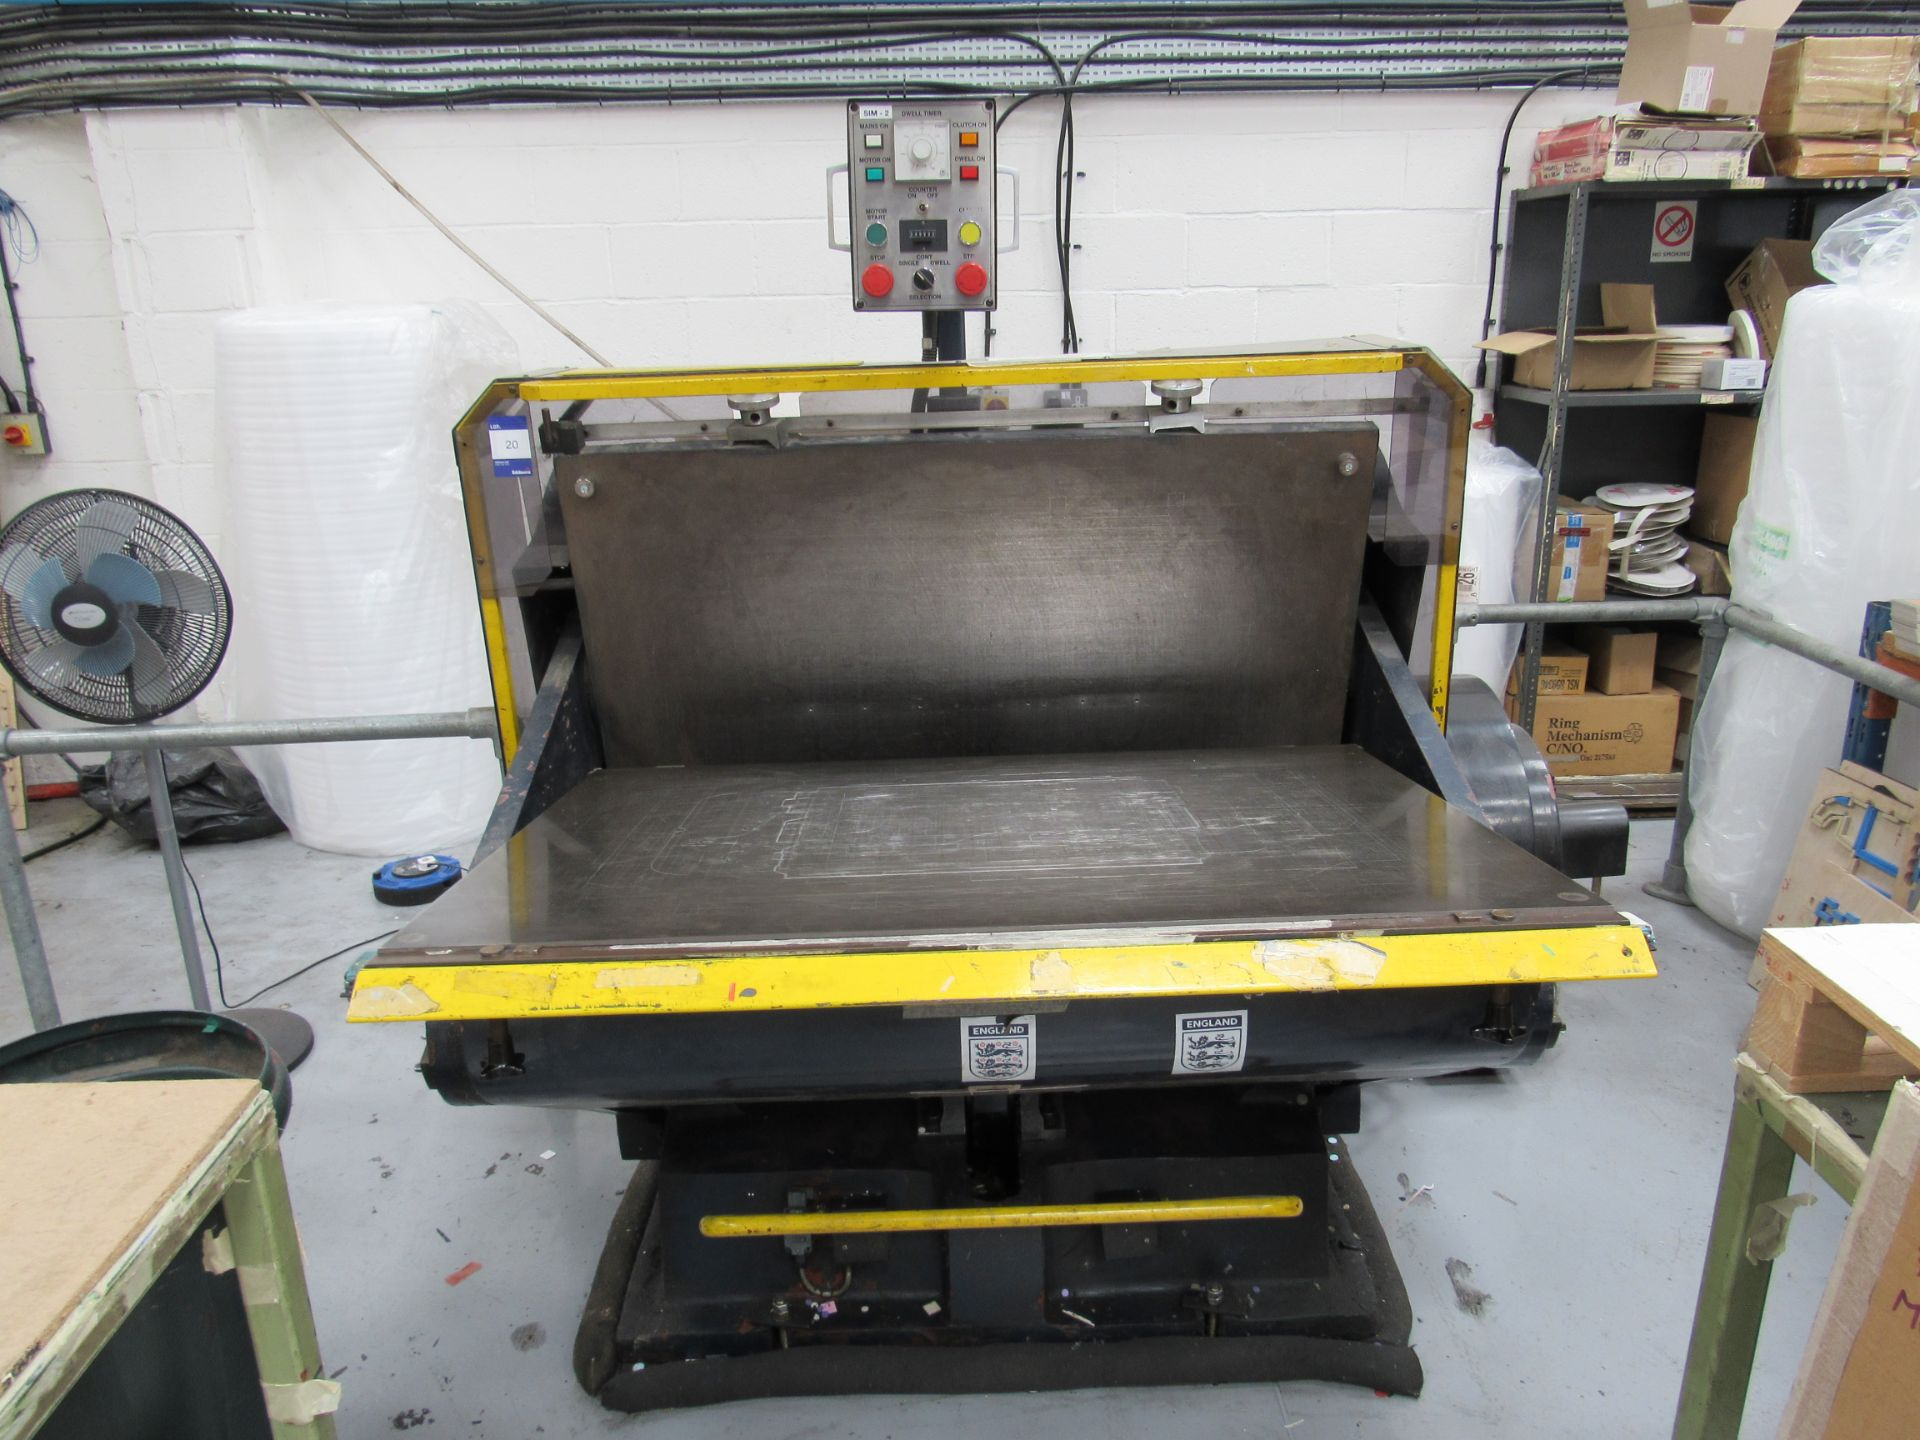 Viking Press VK1330 Cut and Crease Platen 1330 x 960mm Serial Number 97172 - Image 8 of 9